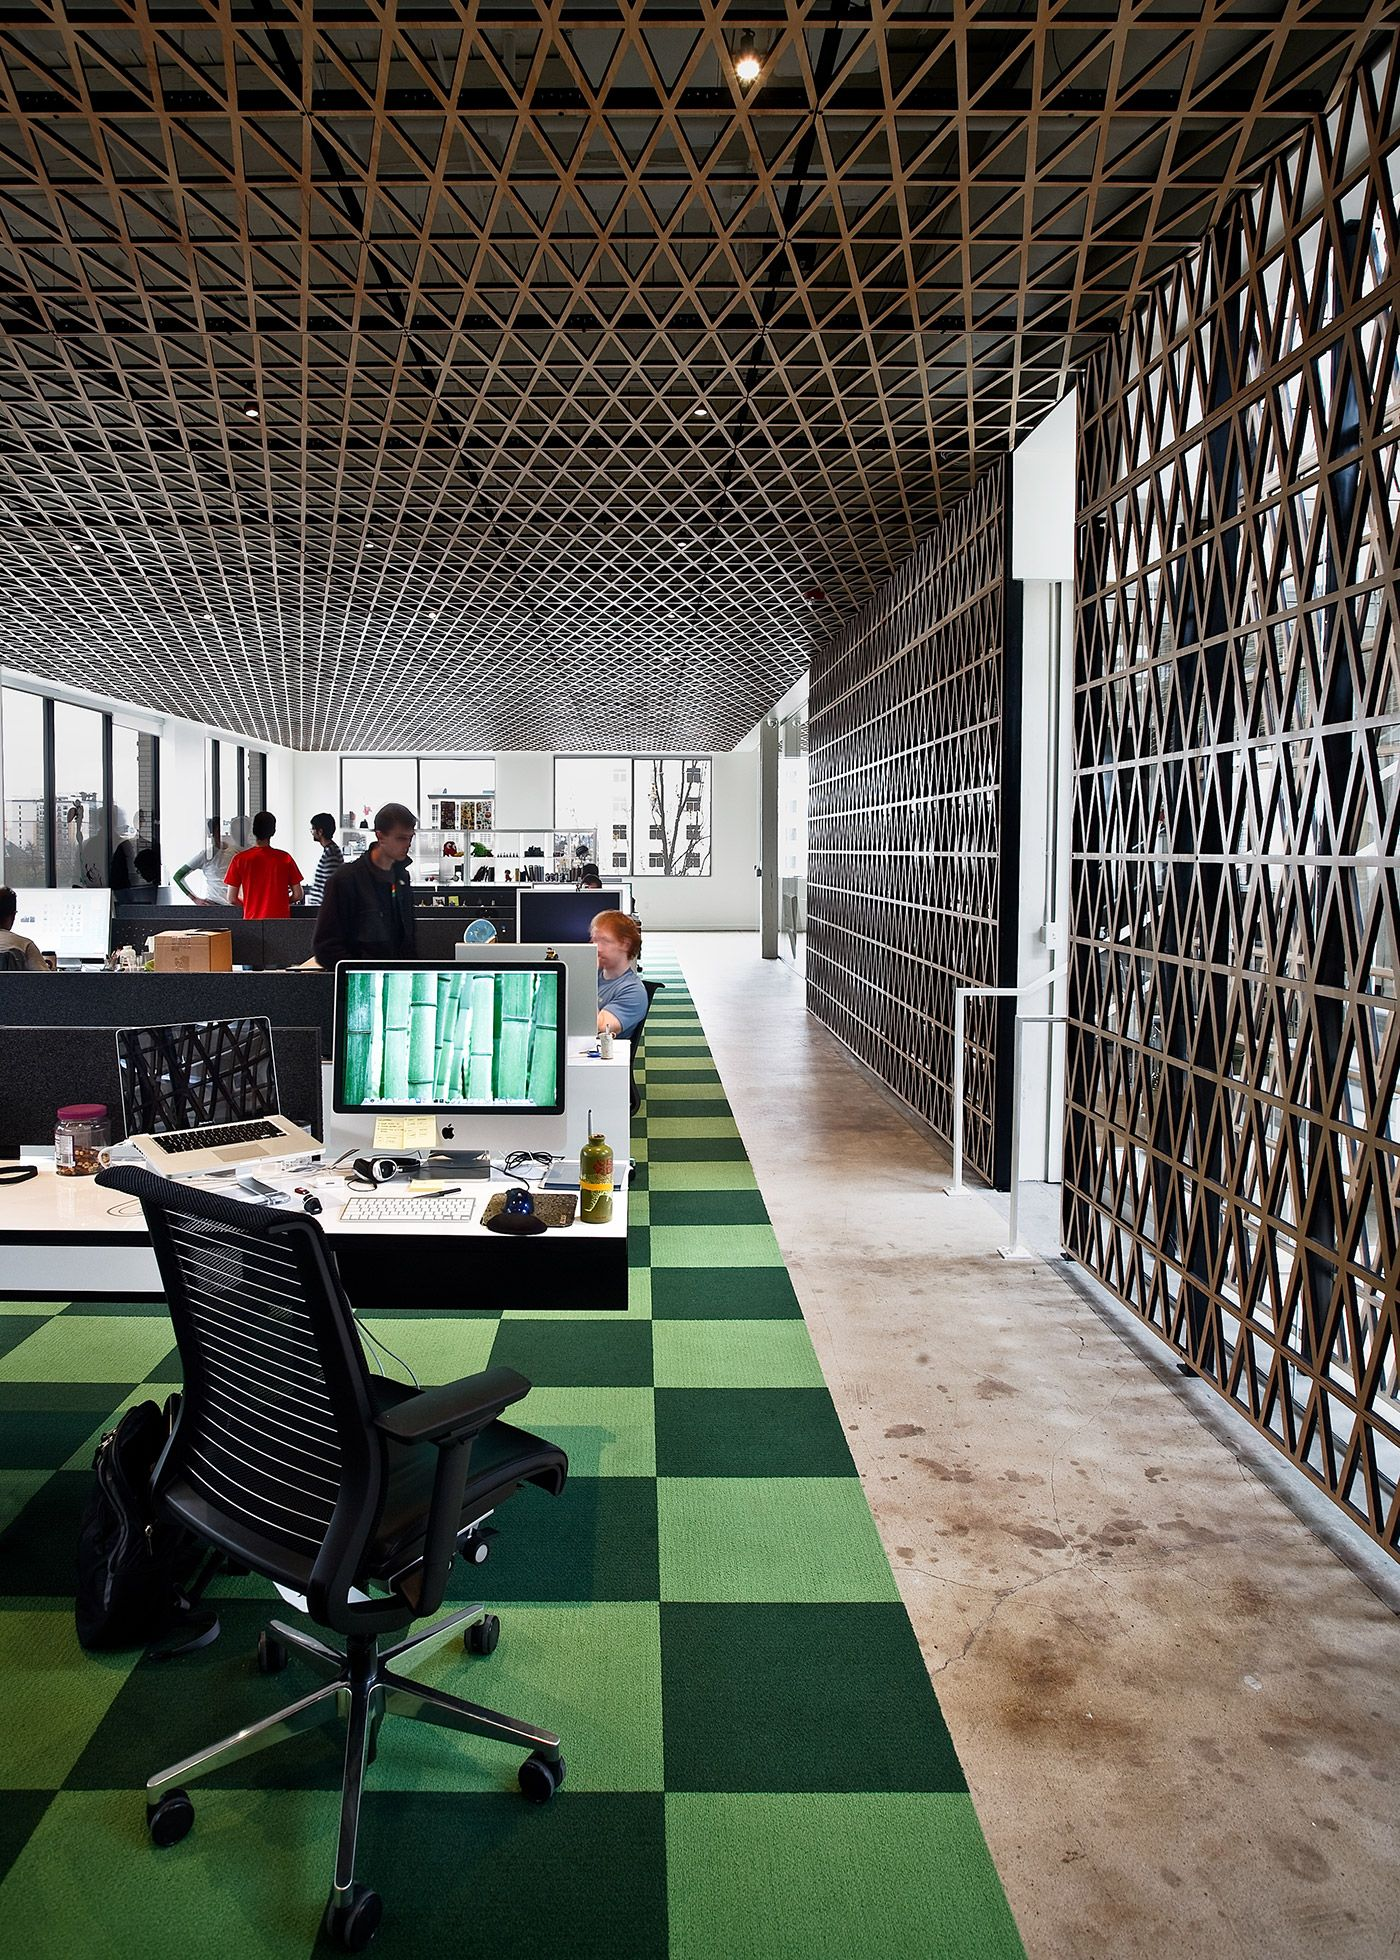 Room Lighting Design Software: Awesome Latticed Walls And Ceilings At The Panic Office In